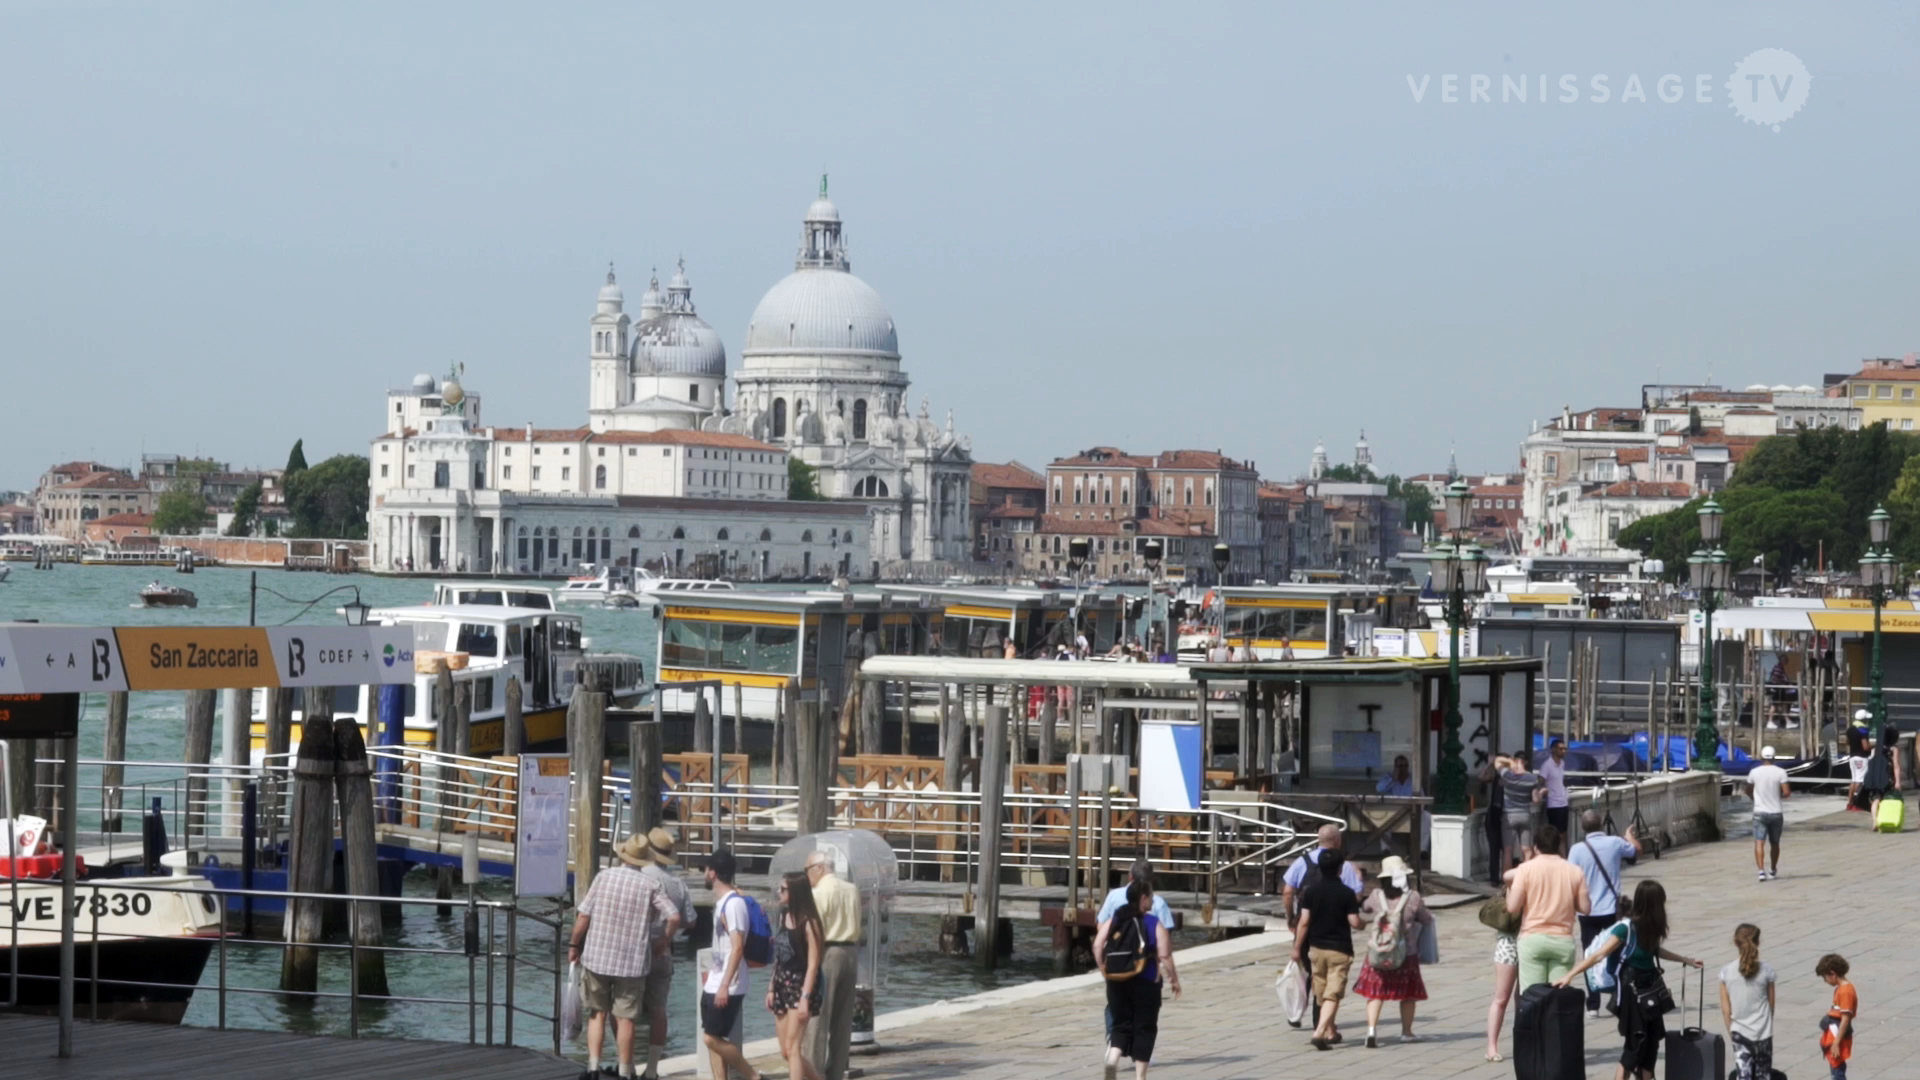 Vernissagetv art tv the window to the art world for Artisti biennale venezia